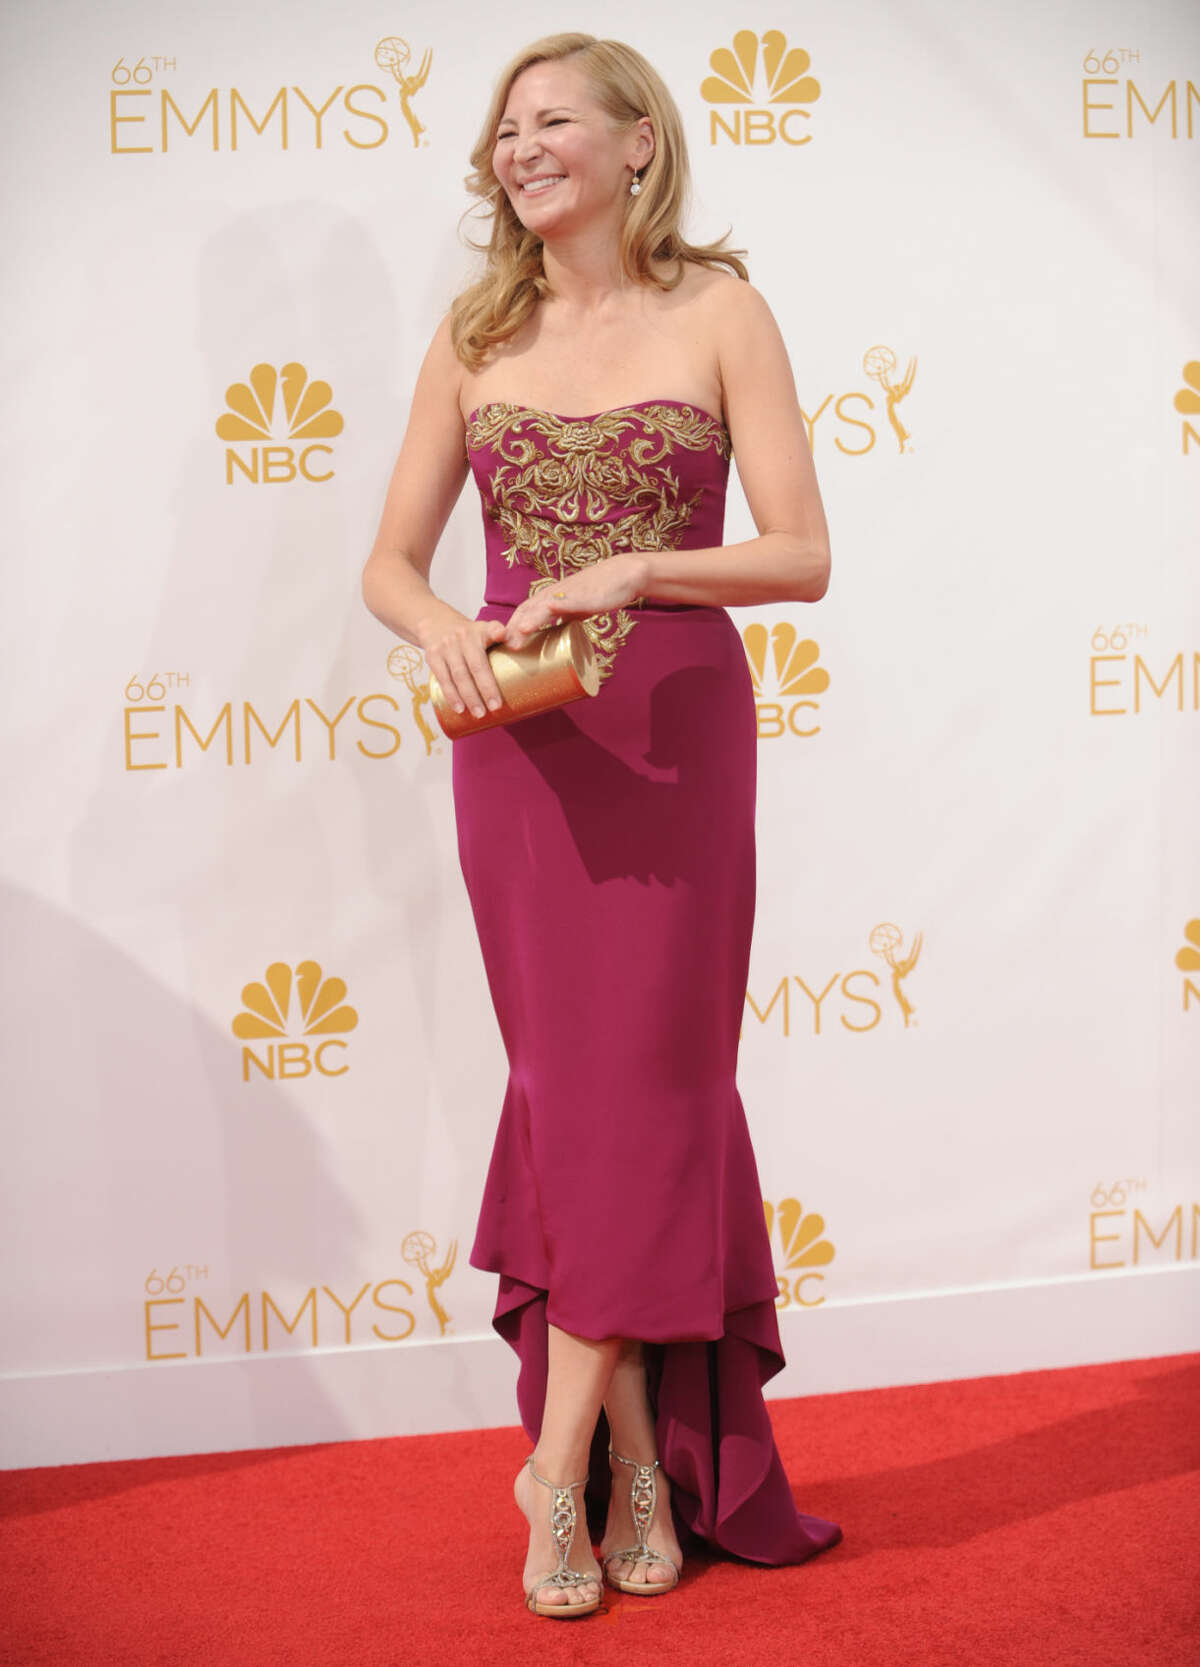 Jennifer Westfeldt arrives at the 66th Annual Primetime Emmy Awards at the Nokia Theatre L.A. Live on Monday, Aug. 25, 2014, in Los Angeles. (Photo by Richard Shotwell/Invision/AP)